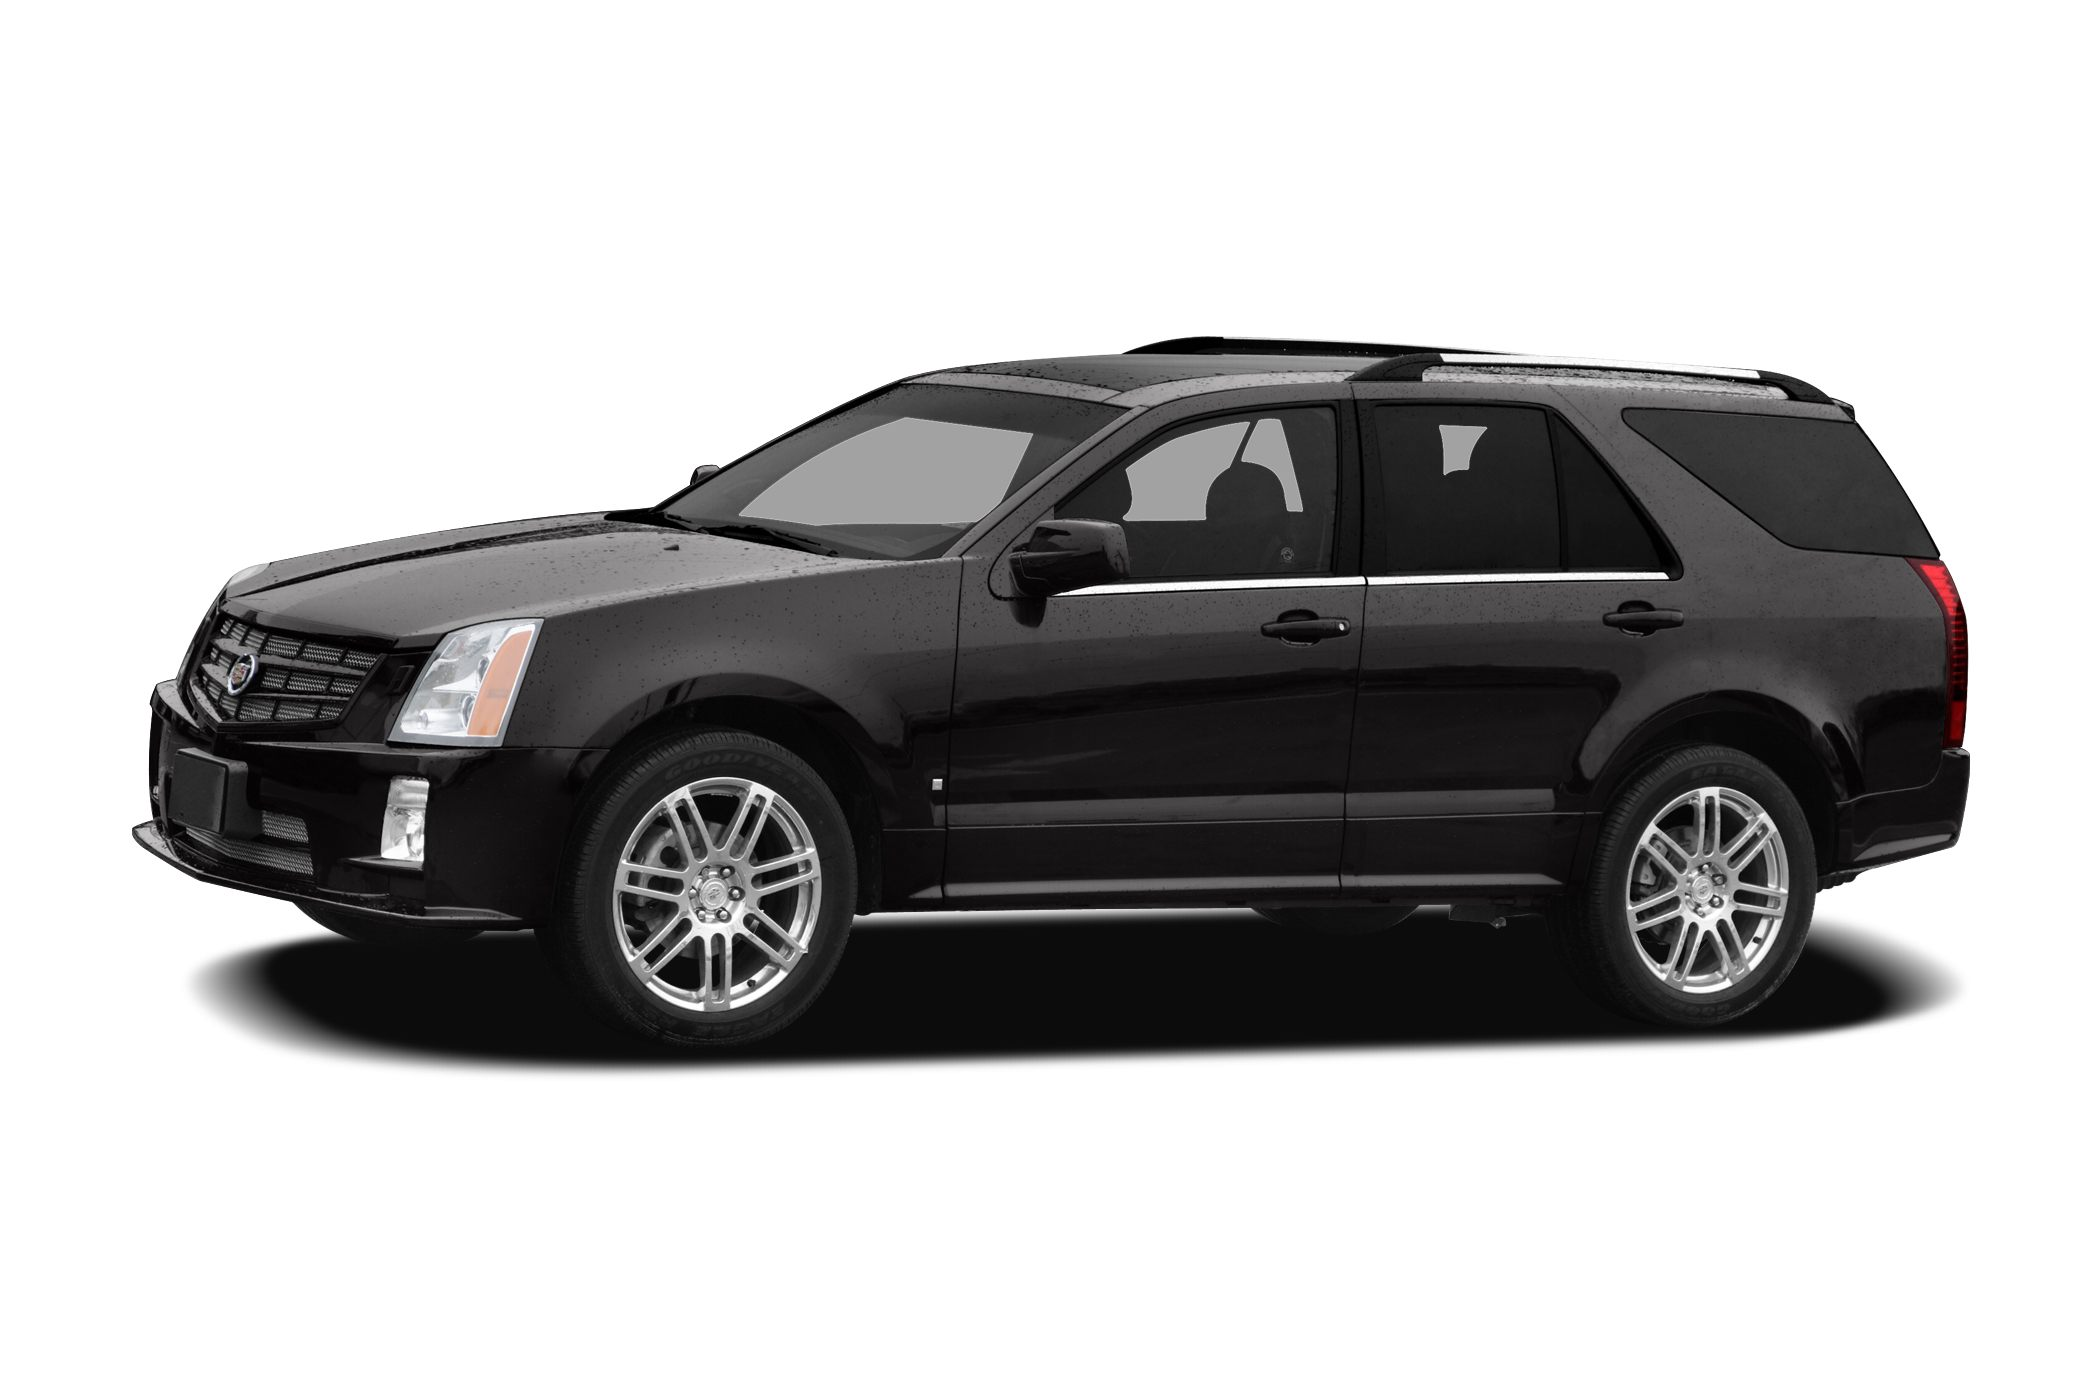 2007 Cadillac SRX V6 SUV for sale in Niagara Falls for $0 with 92,474 miles